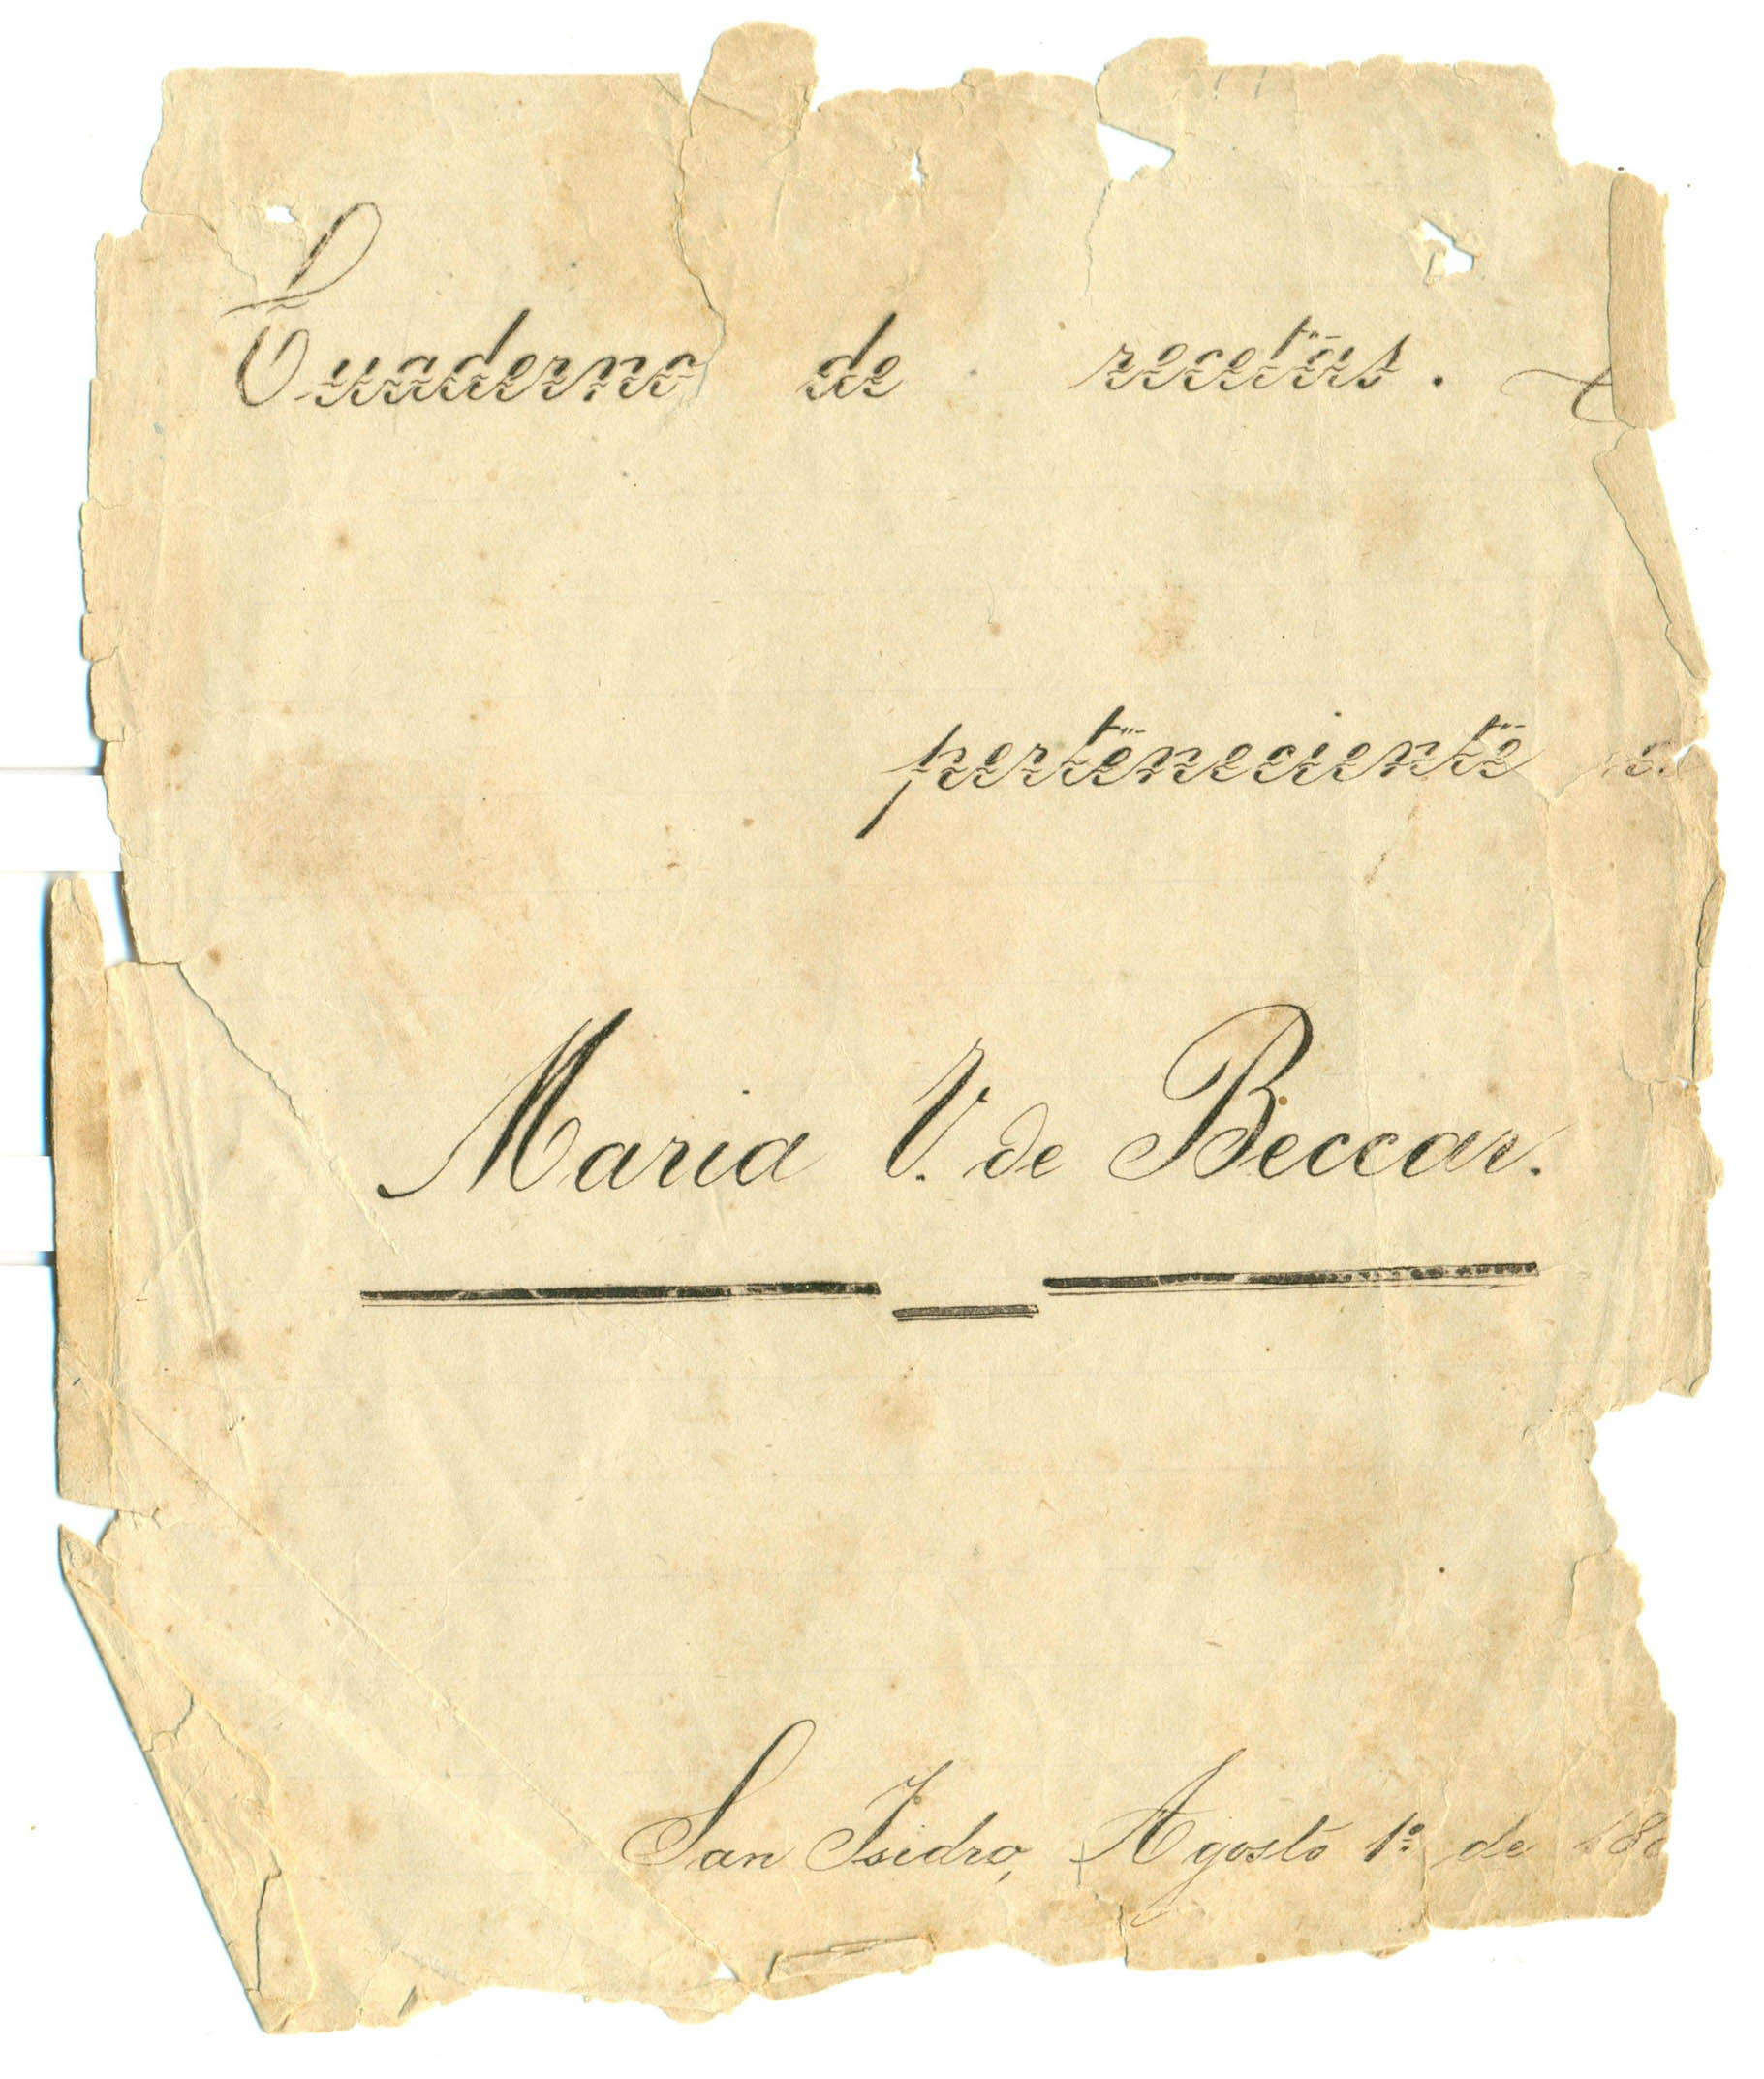 El manuscrito encontrado, que data de 1881